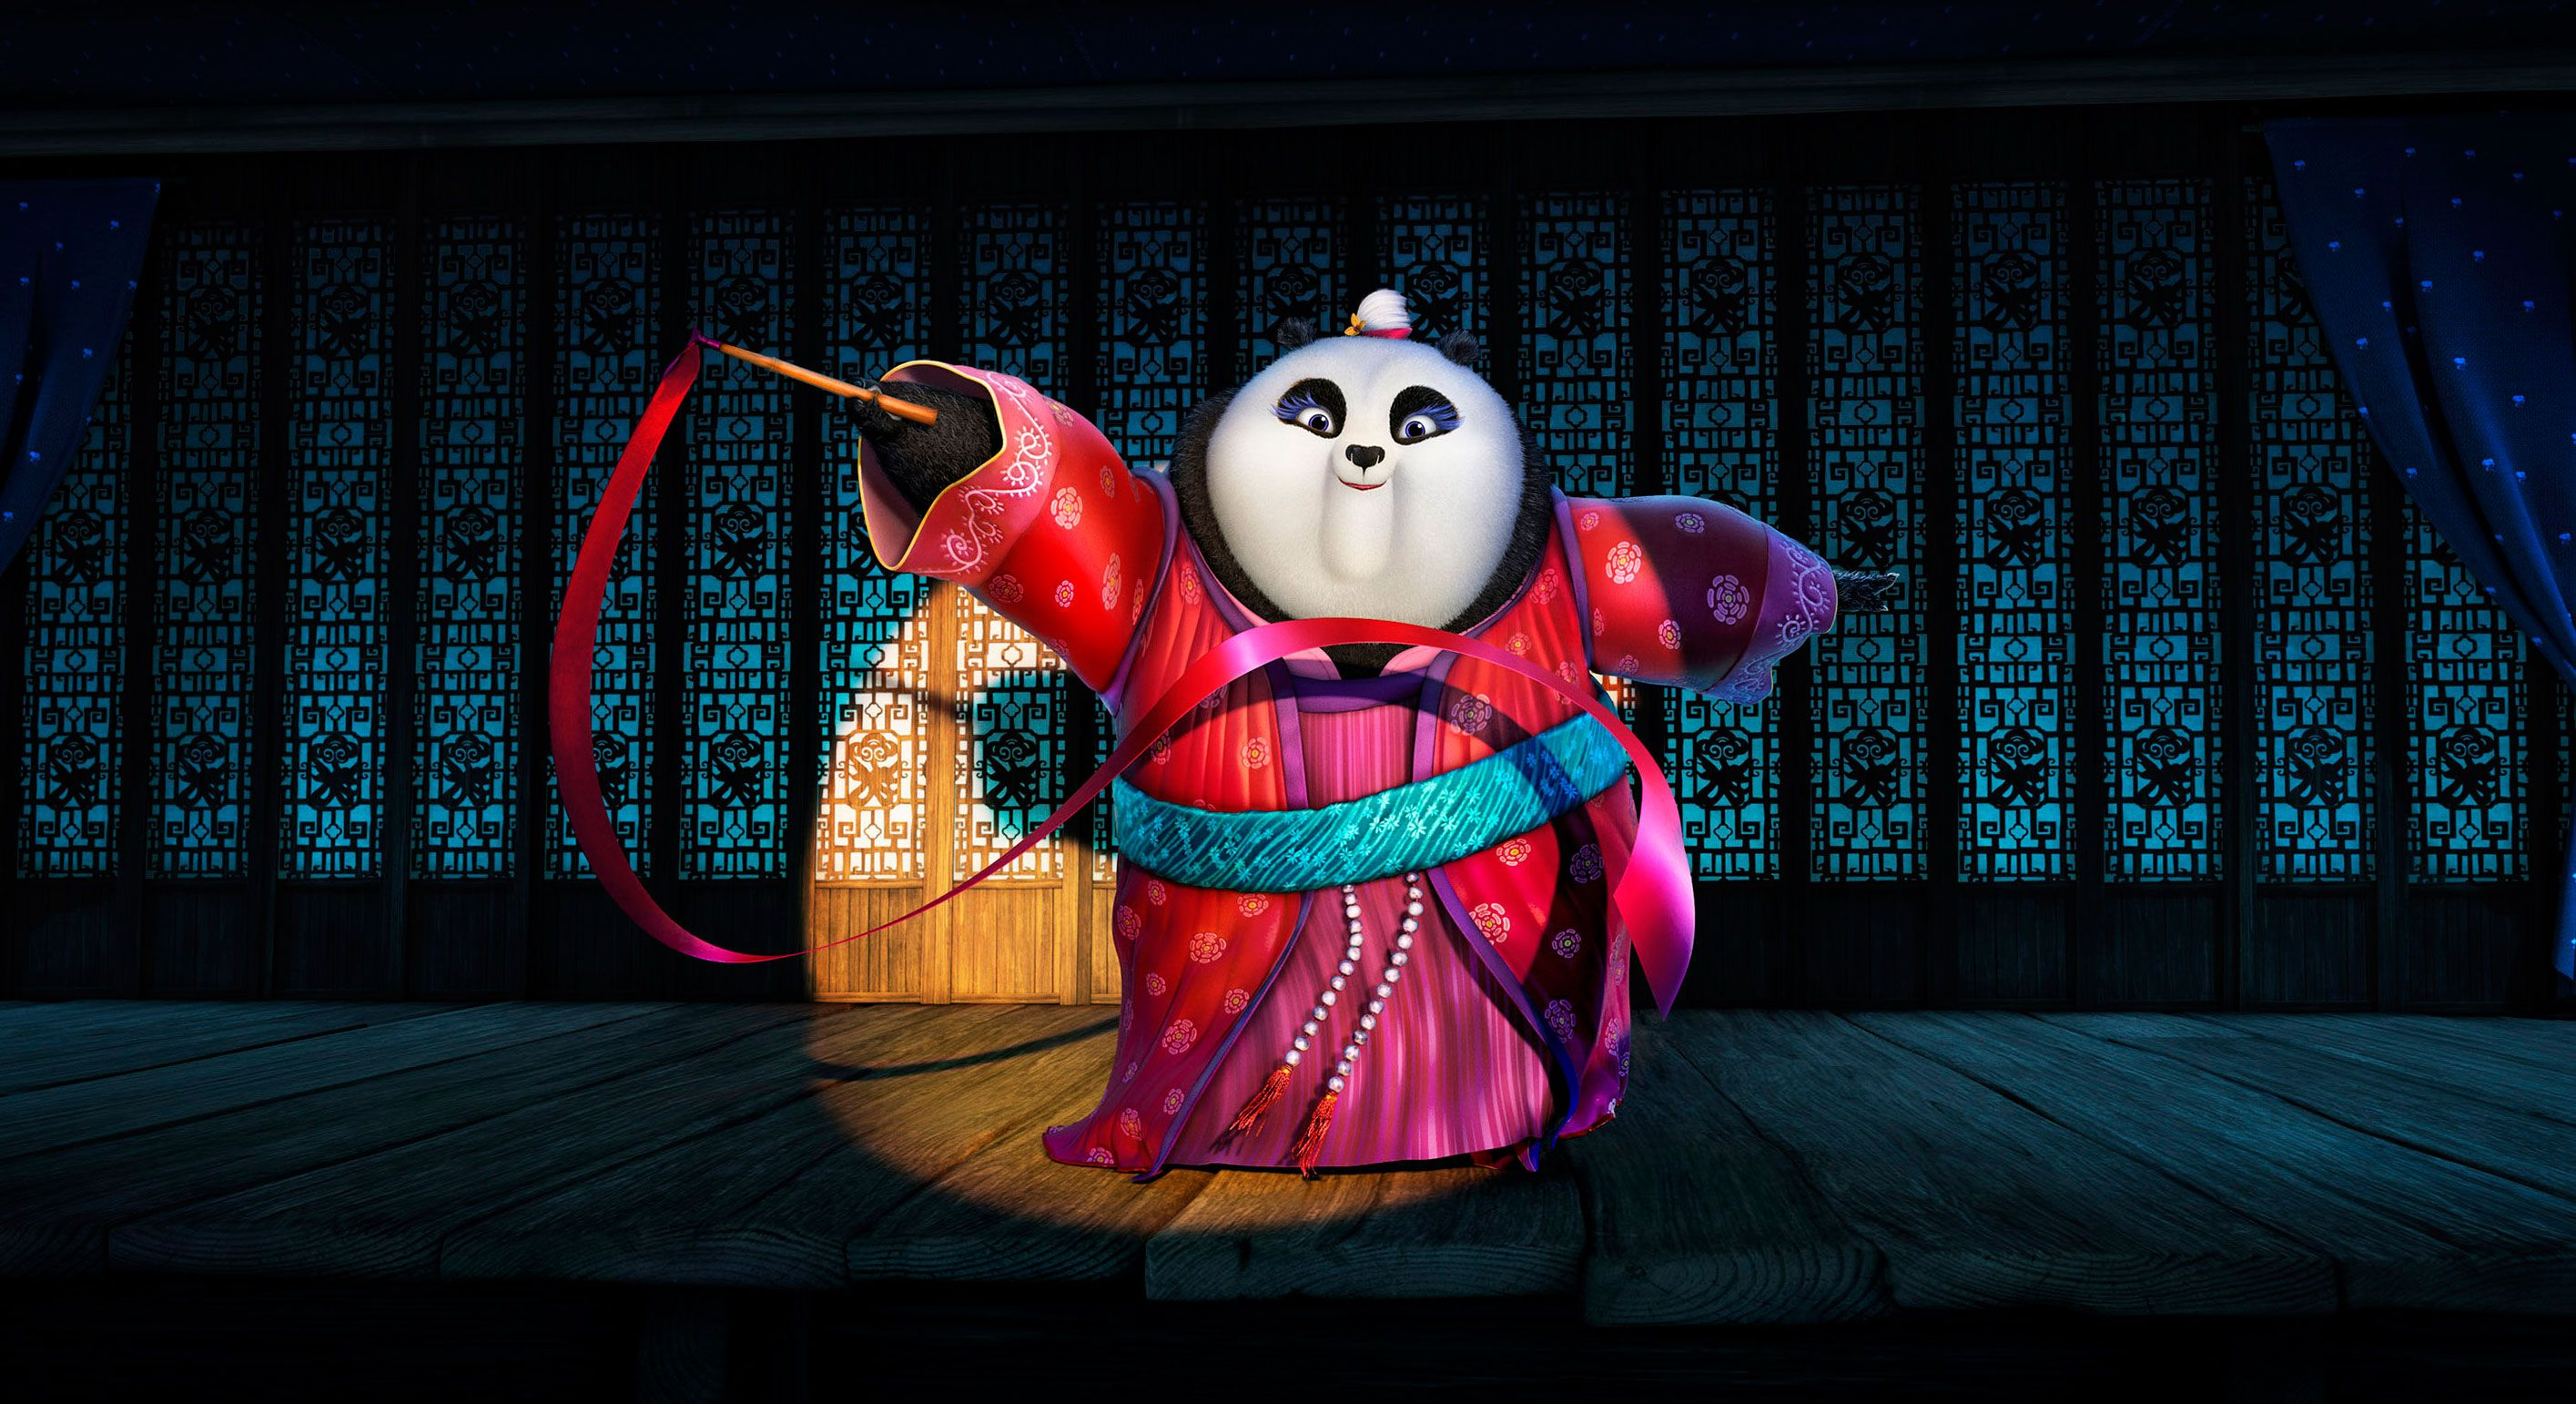 Kung Fu Panda 3 Images Reveal Po's Family Reunion | Collider